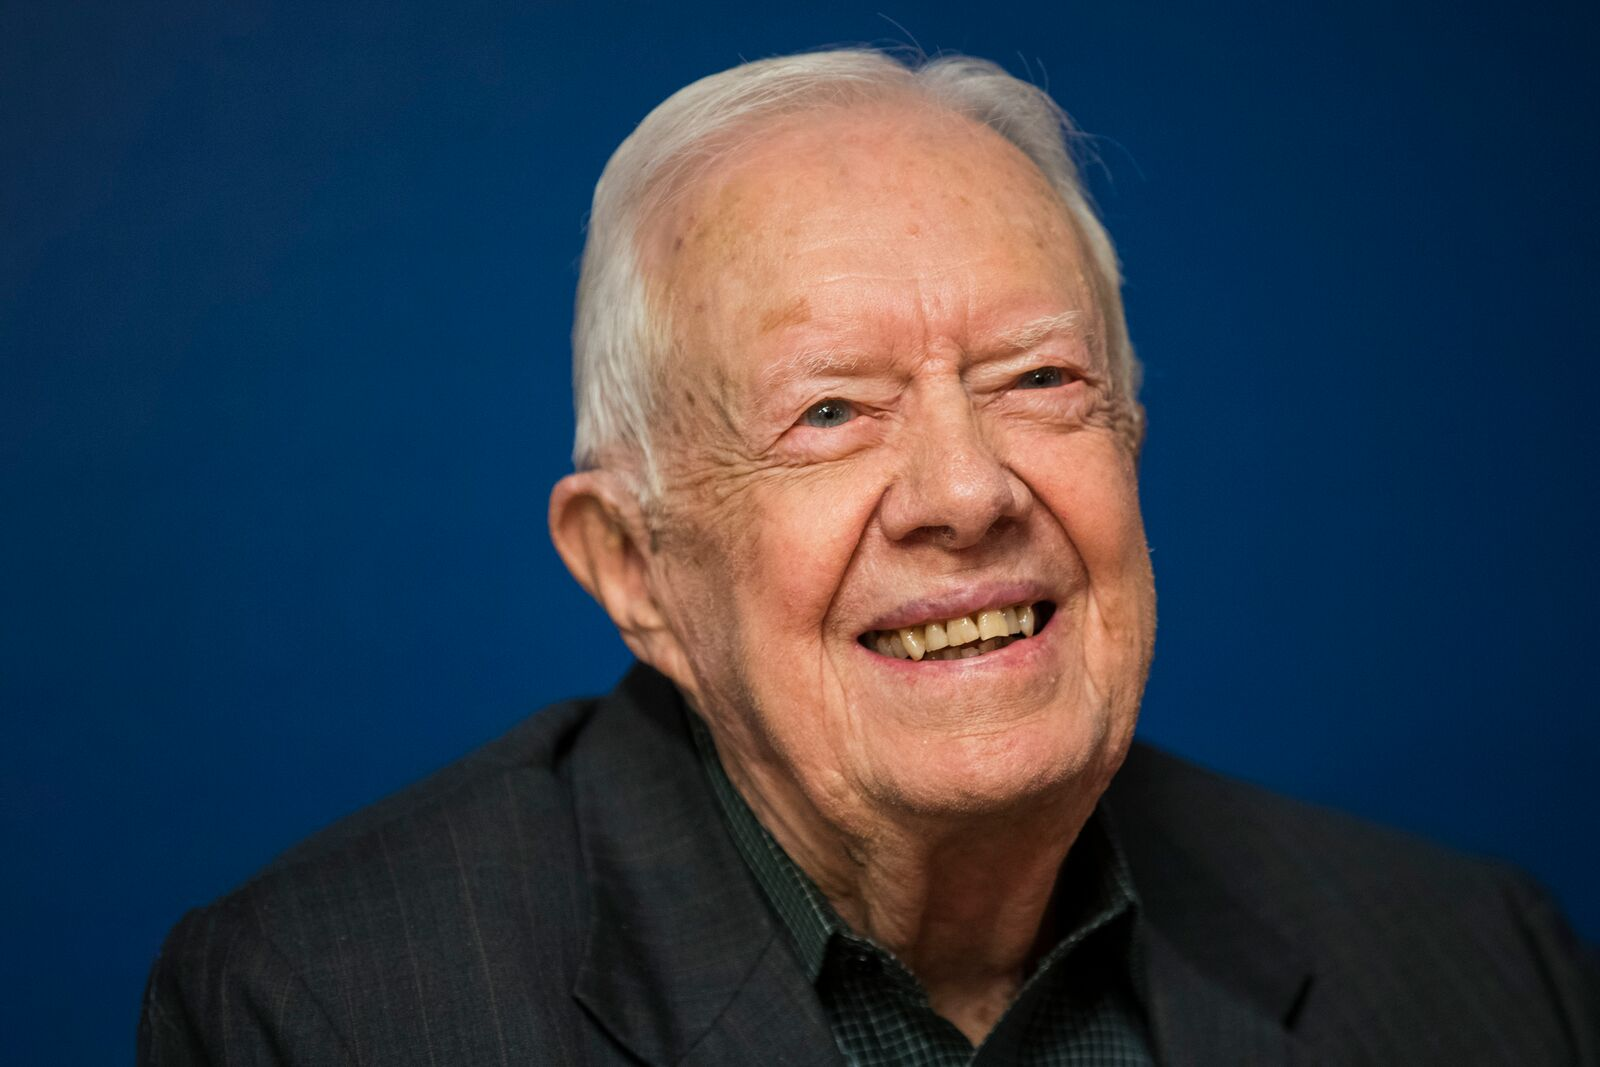 Former U.S. President Jimmy Carter smiles during a book signing event for his new book 'Faith: A Journey For All' at Barnes & Noble bookstore in Midtown Manhattan, March 26, 2018 in New York City | Photo: Getty Images